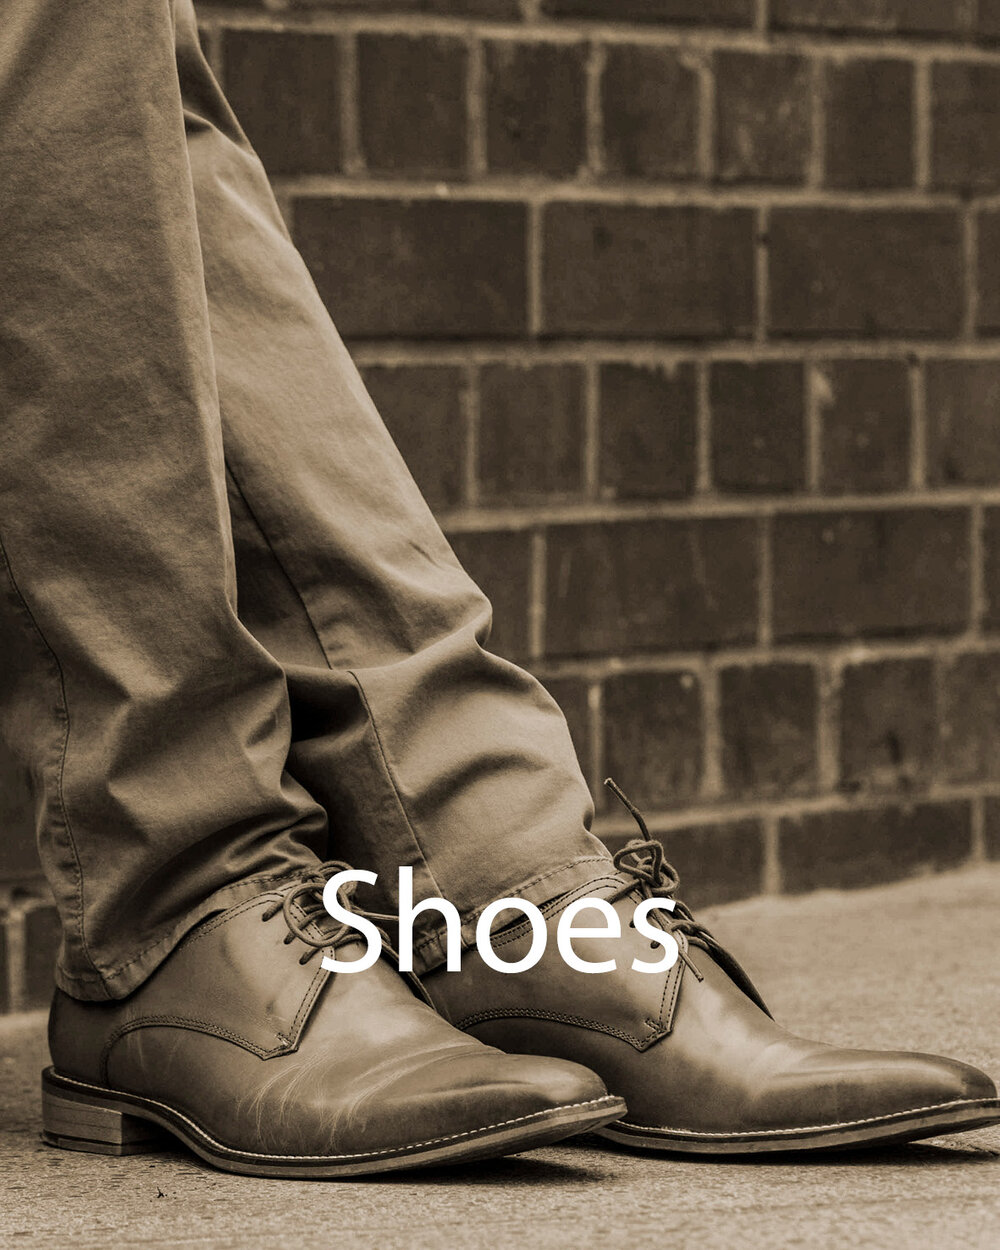 Image gateway for Shoes page on Symonds of Hereford website